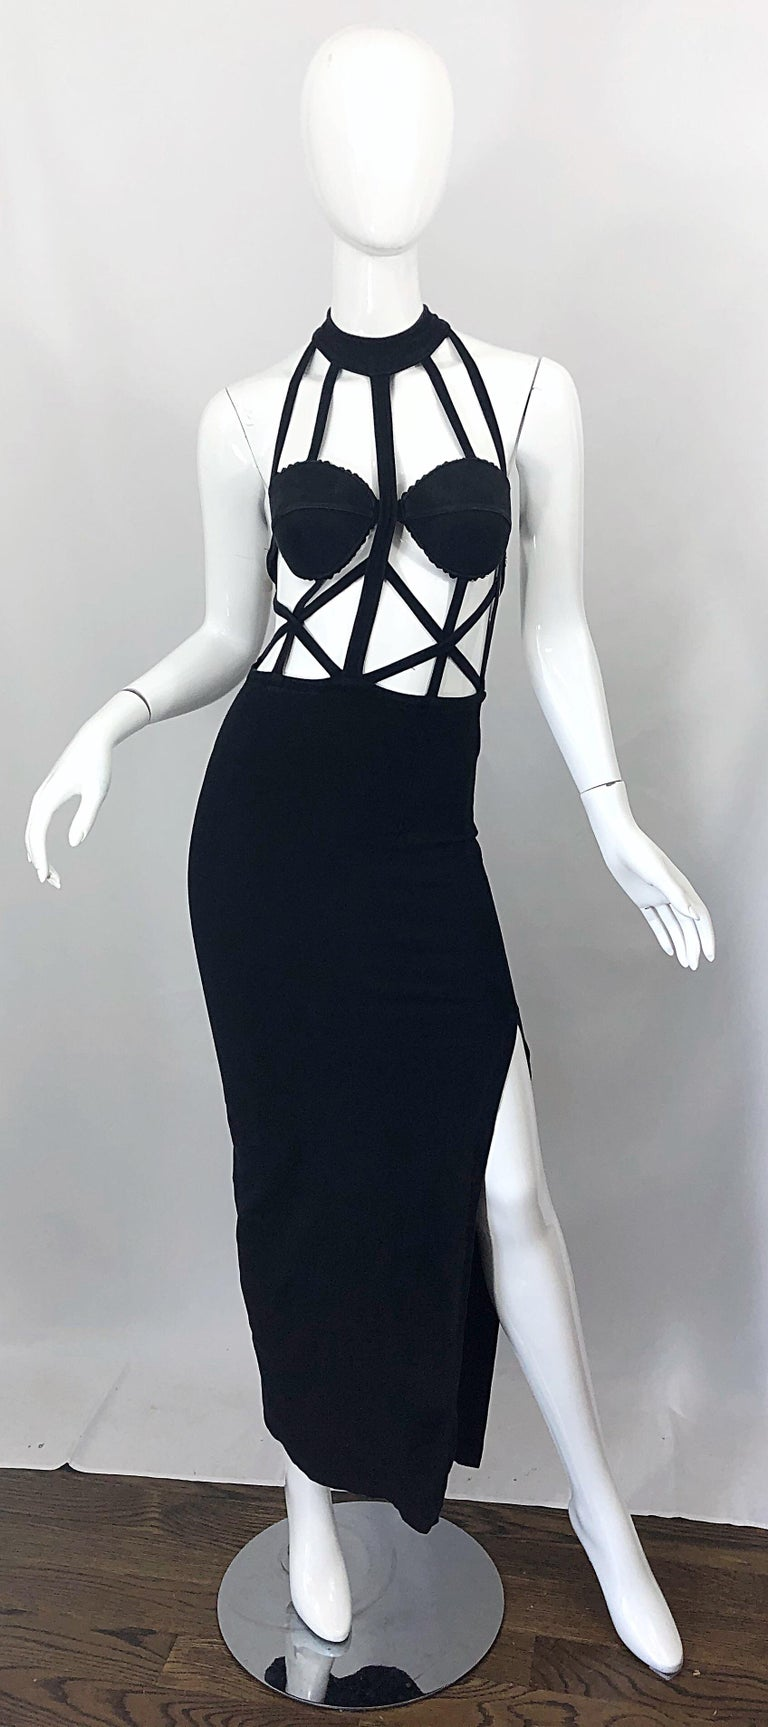 Sexy early 90s designer black vintage cut-out cage / spiderweb bodcon stretch gown / dress ! Features cut-outs on the front and back. Comfortable cotton jersey stretches to fit. Such a sexy flattering gem that looks like Jean Paul Gaultier, Claude